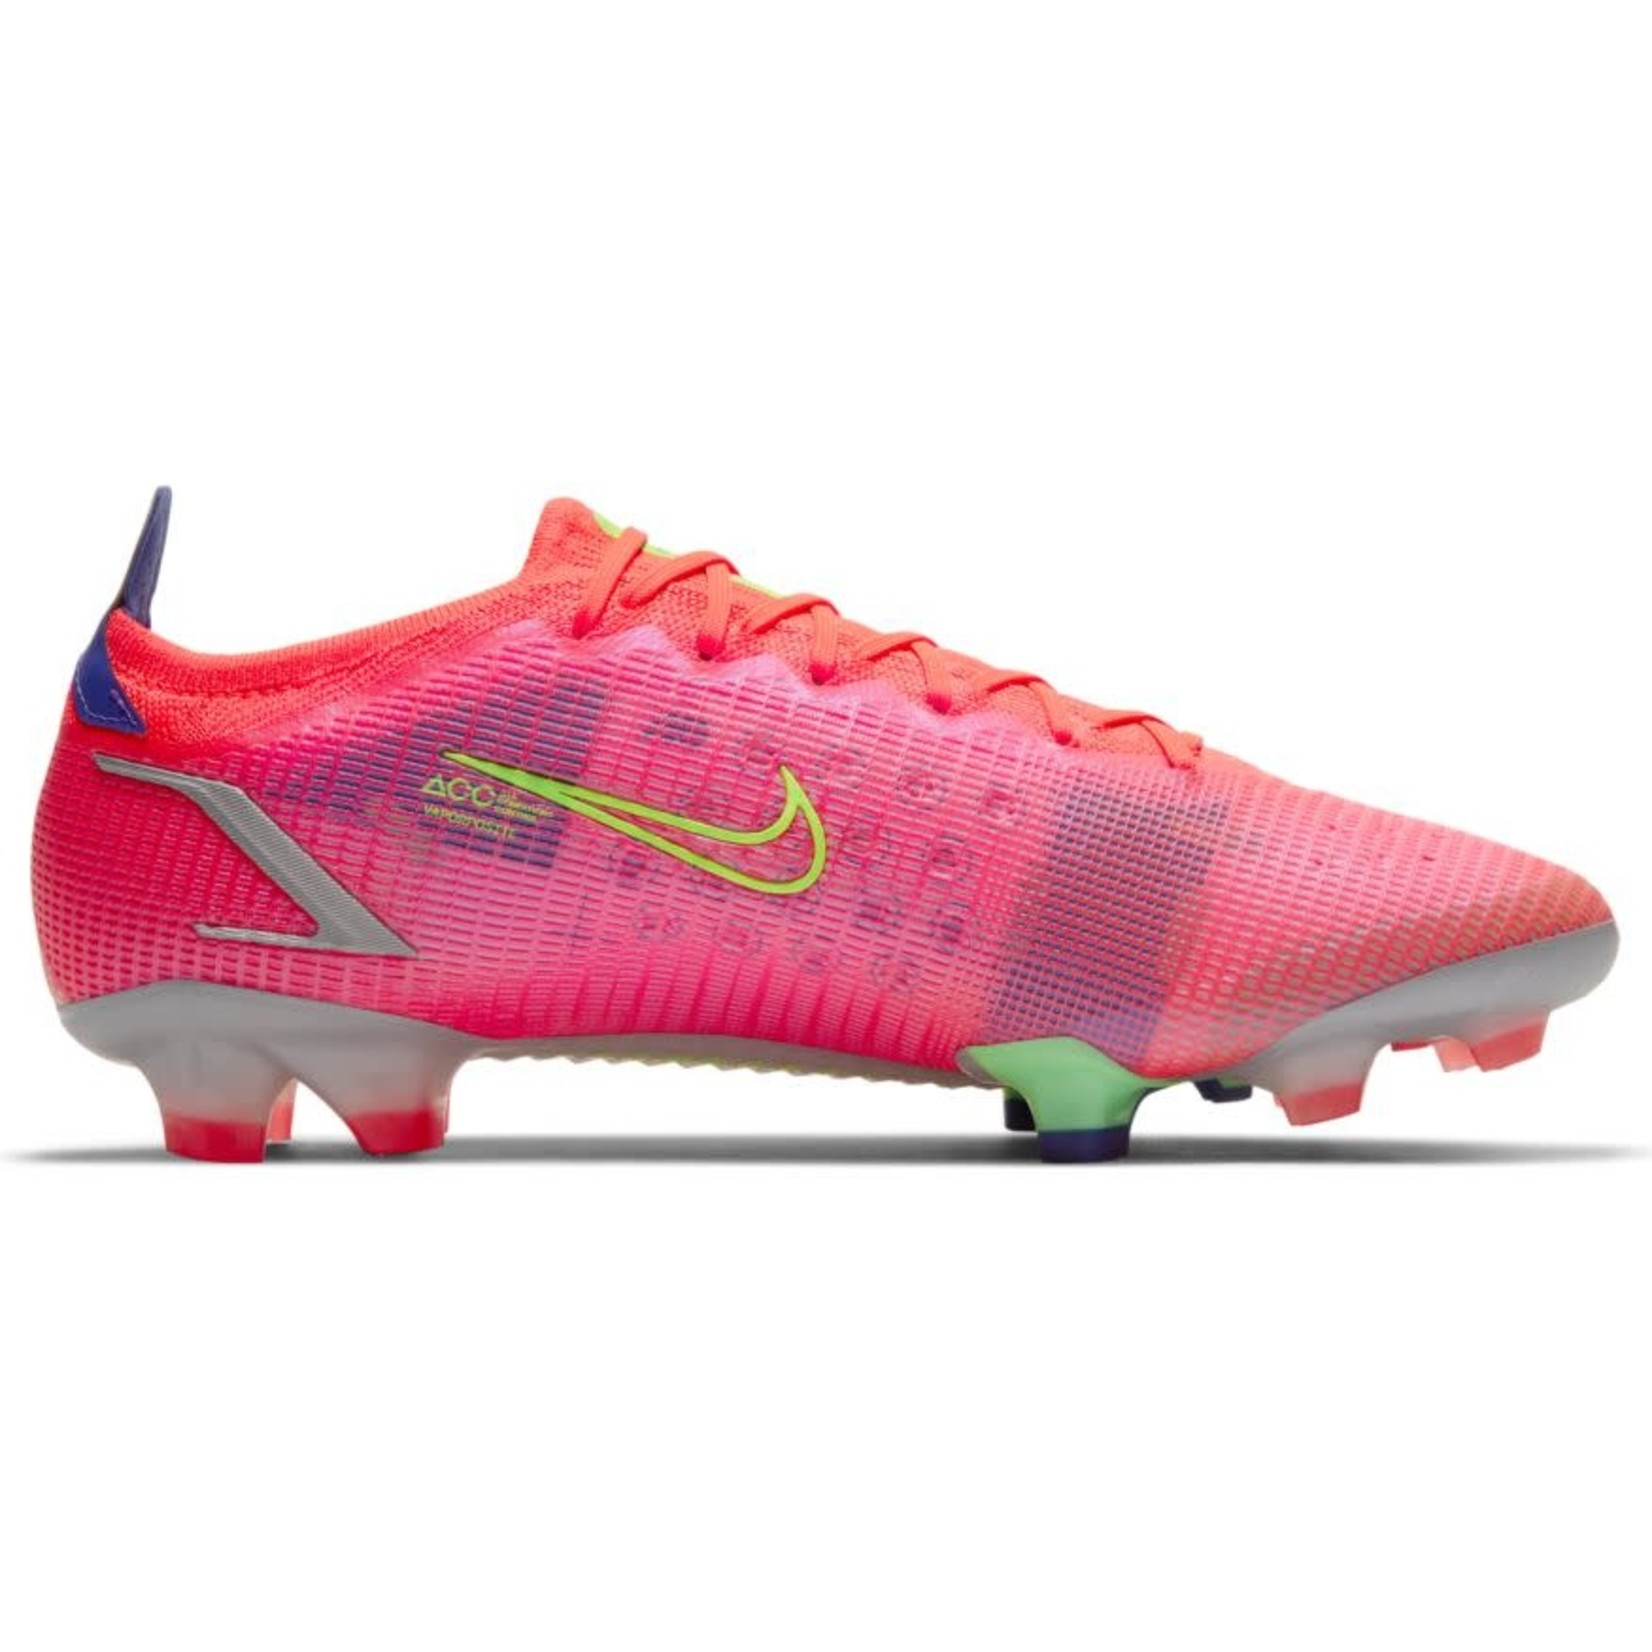 NIKE MERCURIAL VAPOR 14 ELITE FG (CRIMSON/LIME)